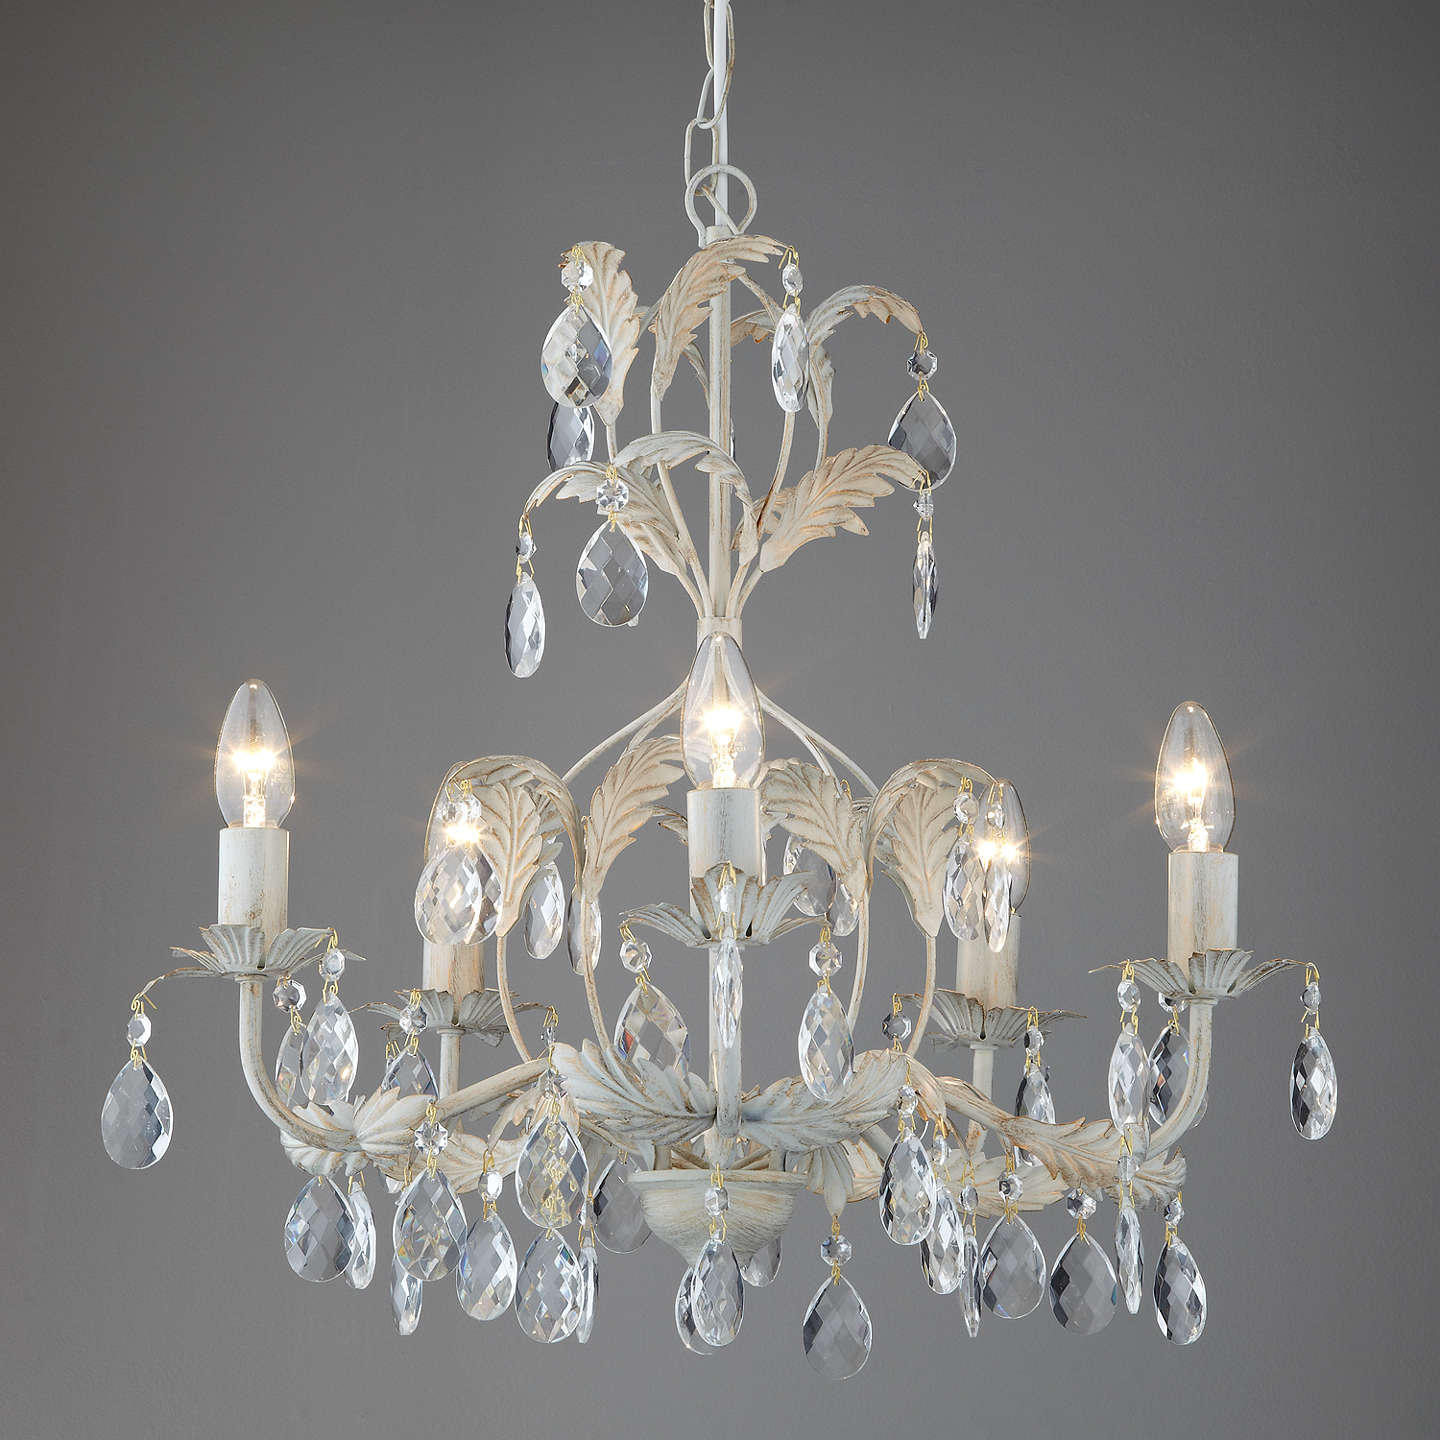 John lewis annabella chandelier 5 arm at john lewis buyjohn lewis annabella chandelier 5 arm online at johnlewis mozeypictures Choice Image